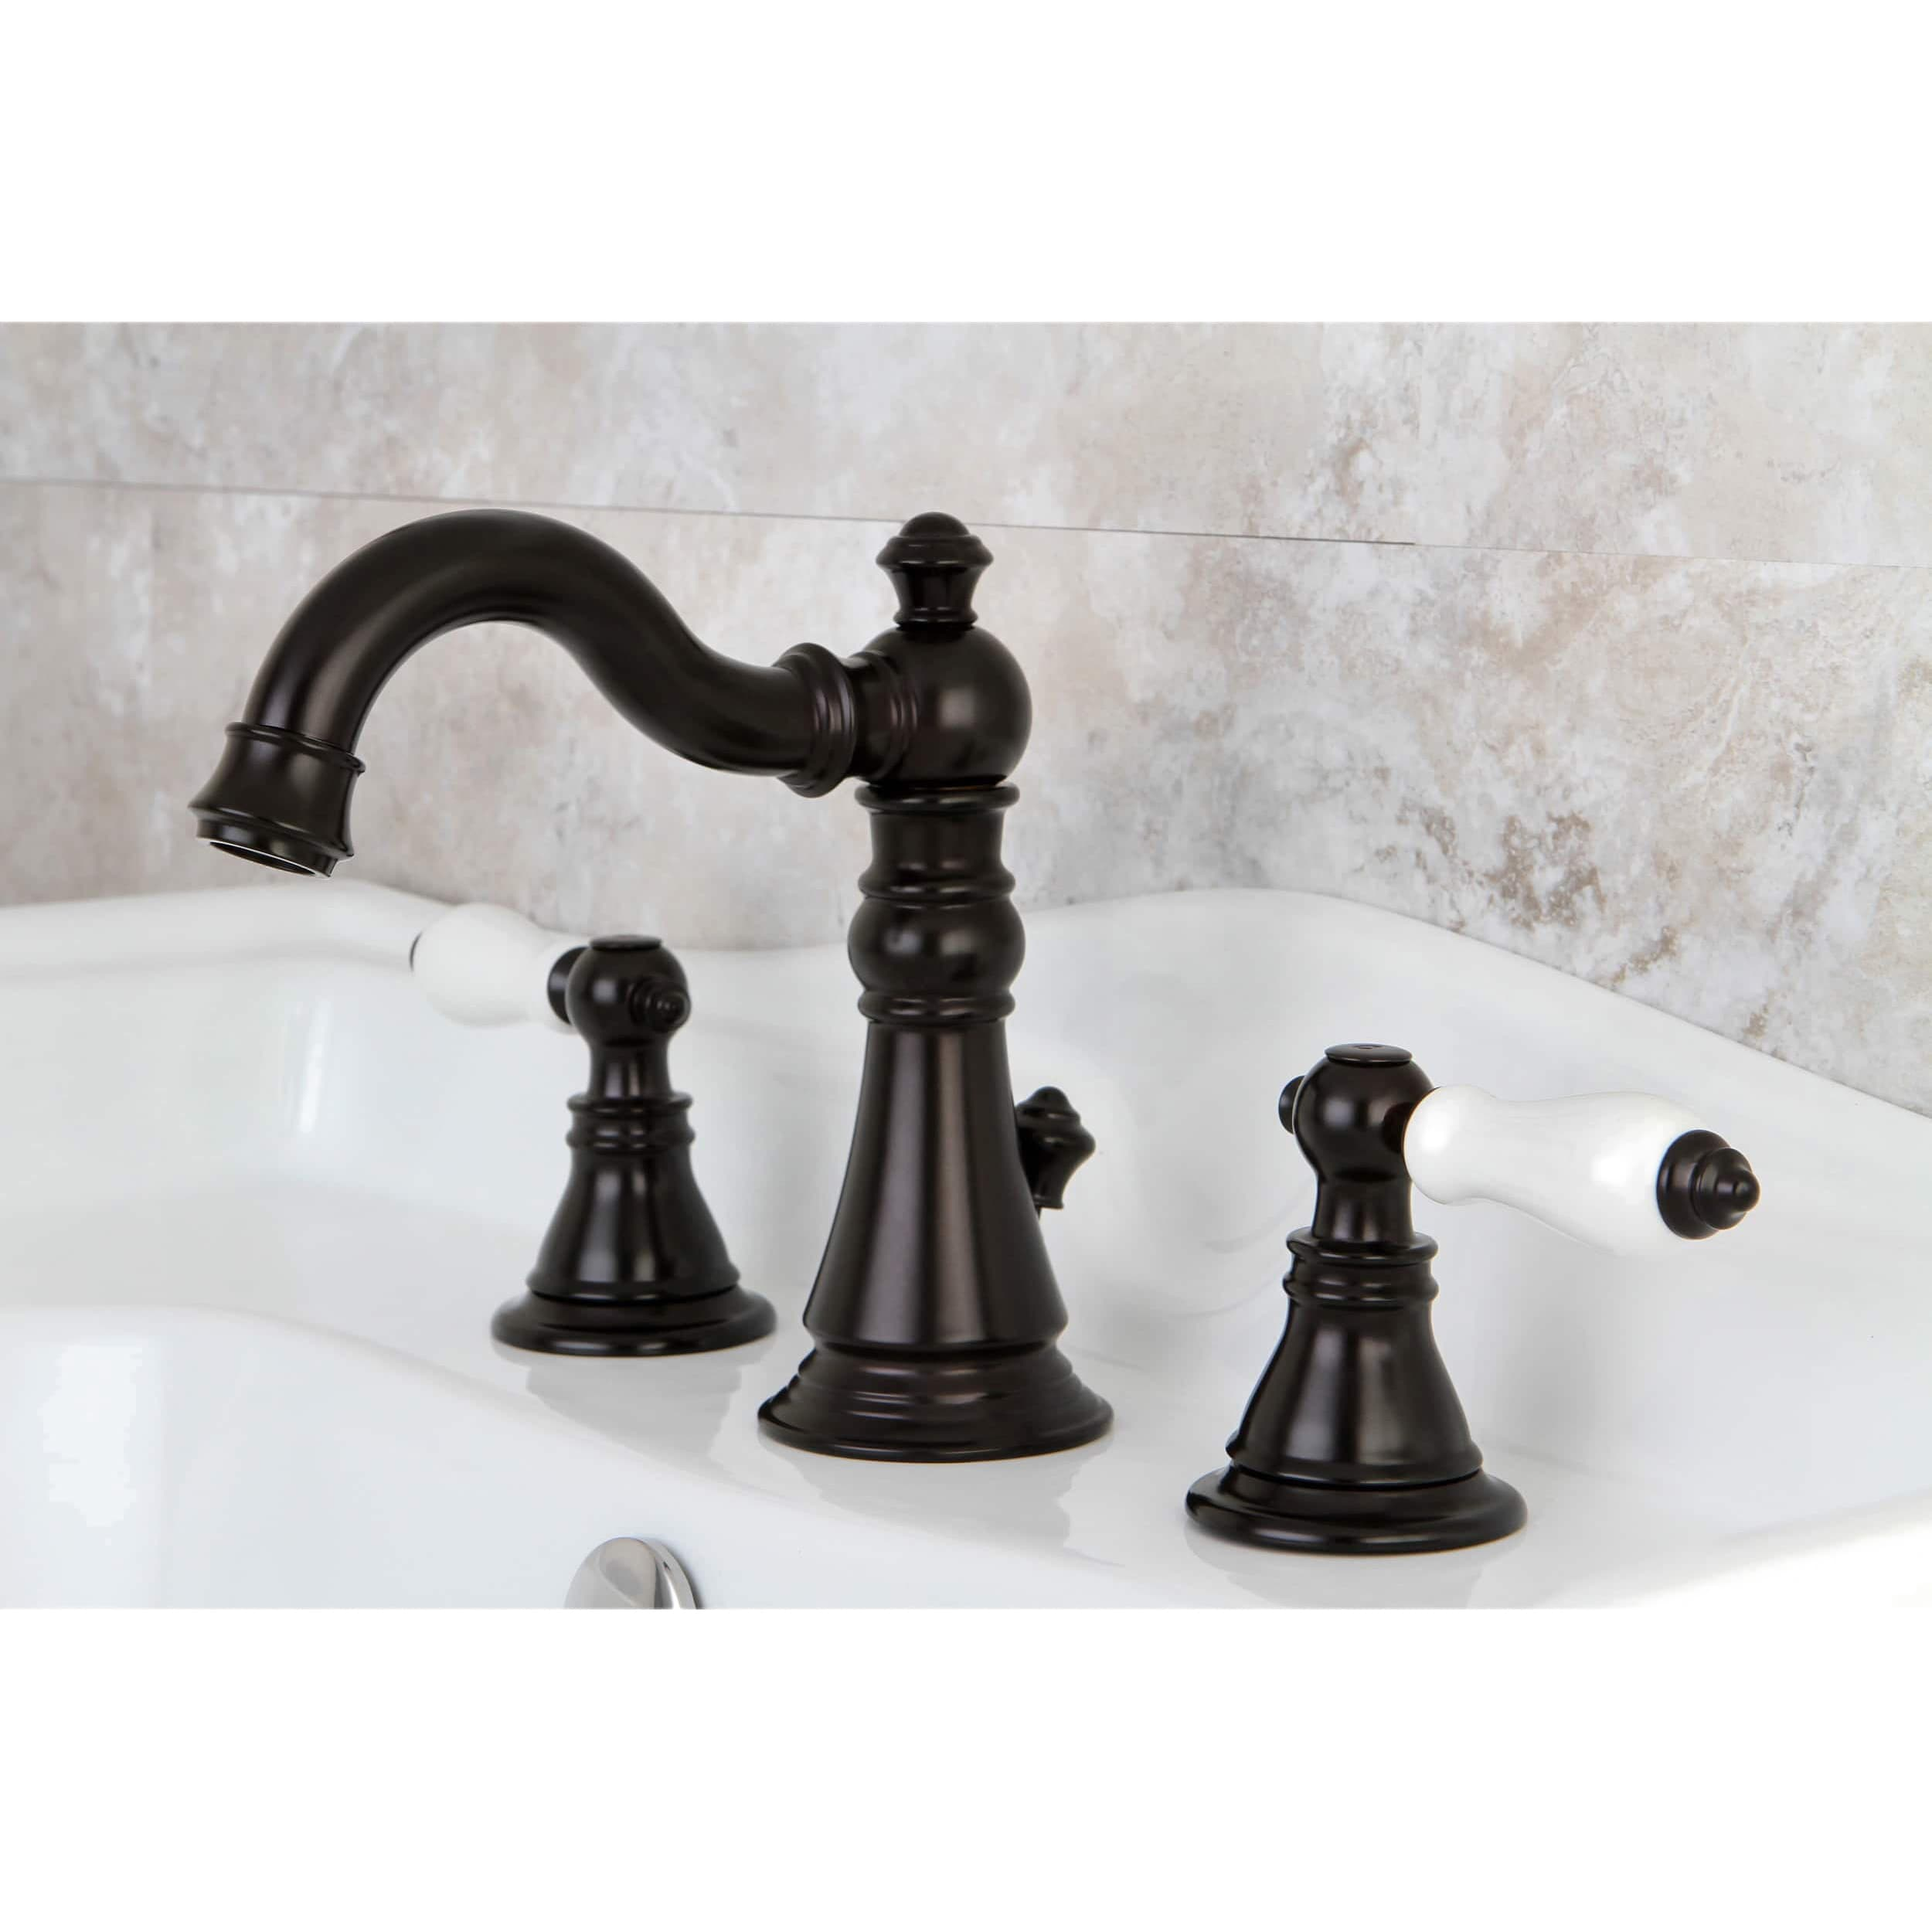 from rubbed three bath faucets light dp waterhill globe oil moen the manufacturer brushed bronze faucet bathroom